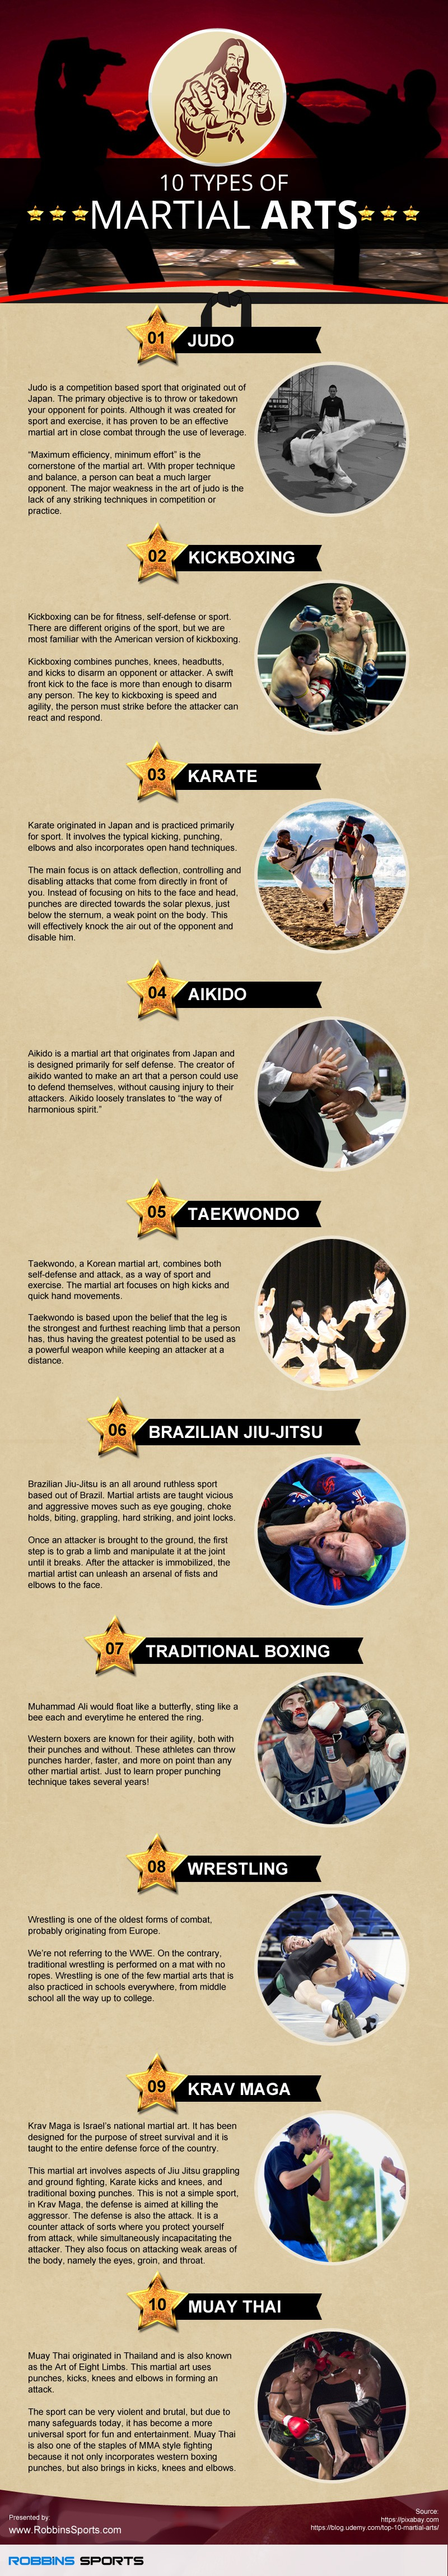 10 Kinds Of Martial Arts - Infographic